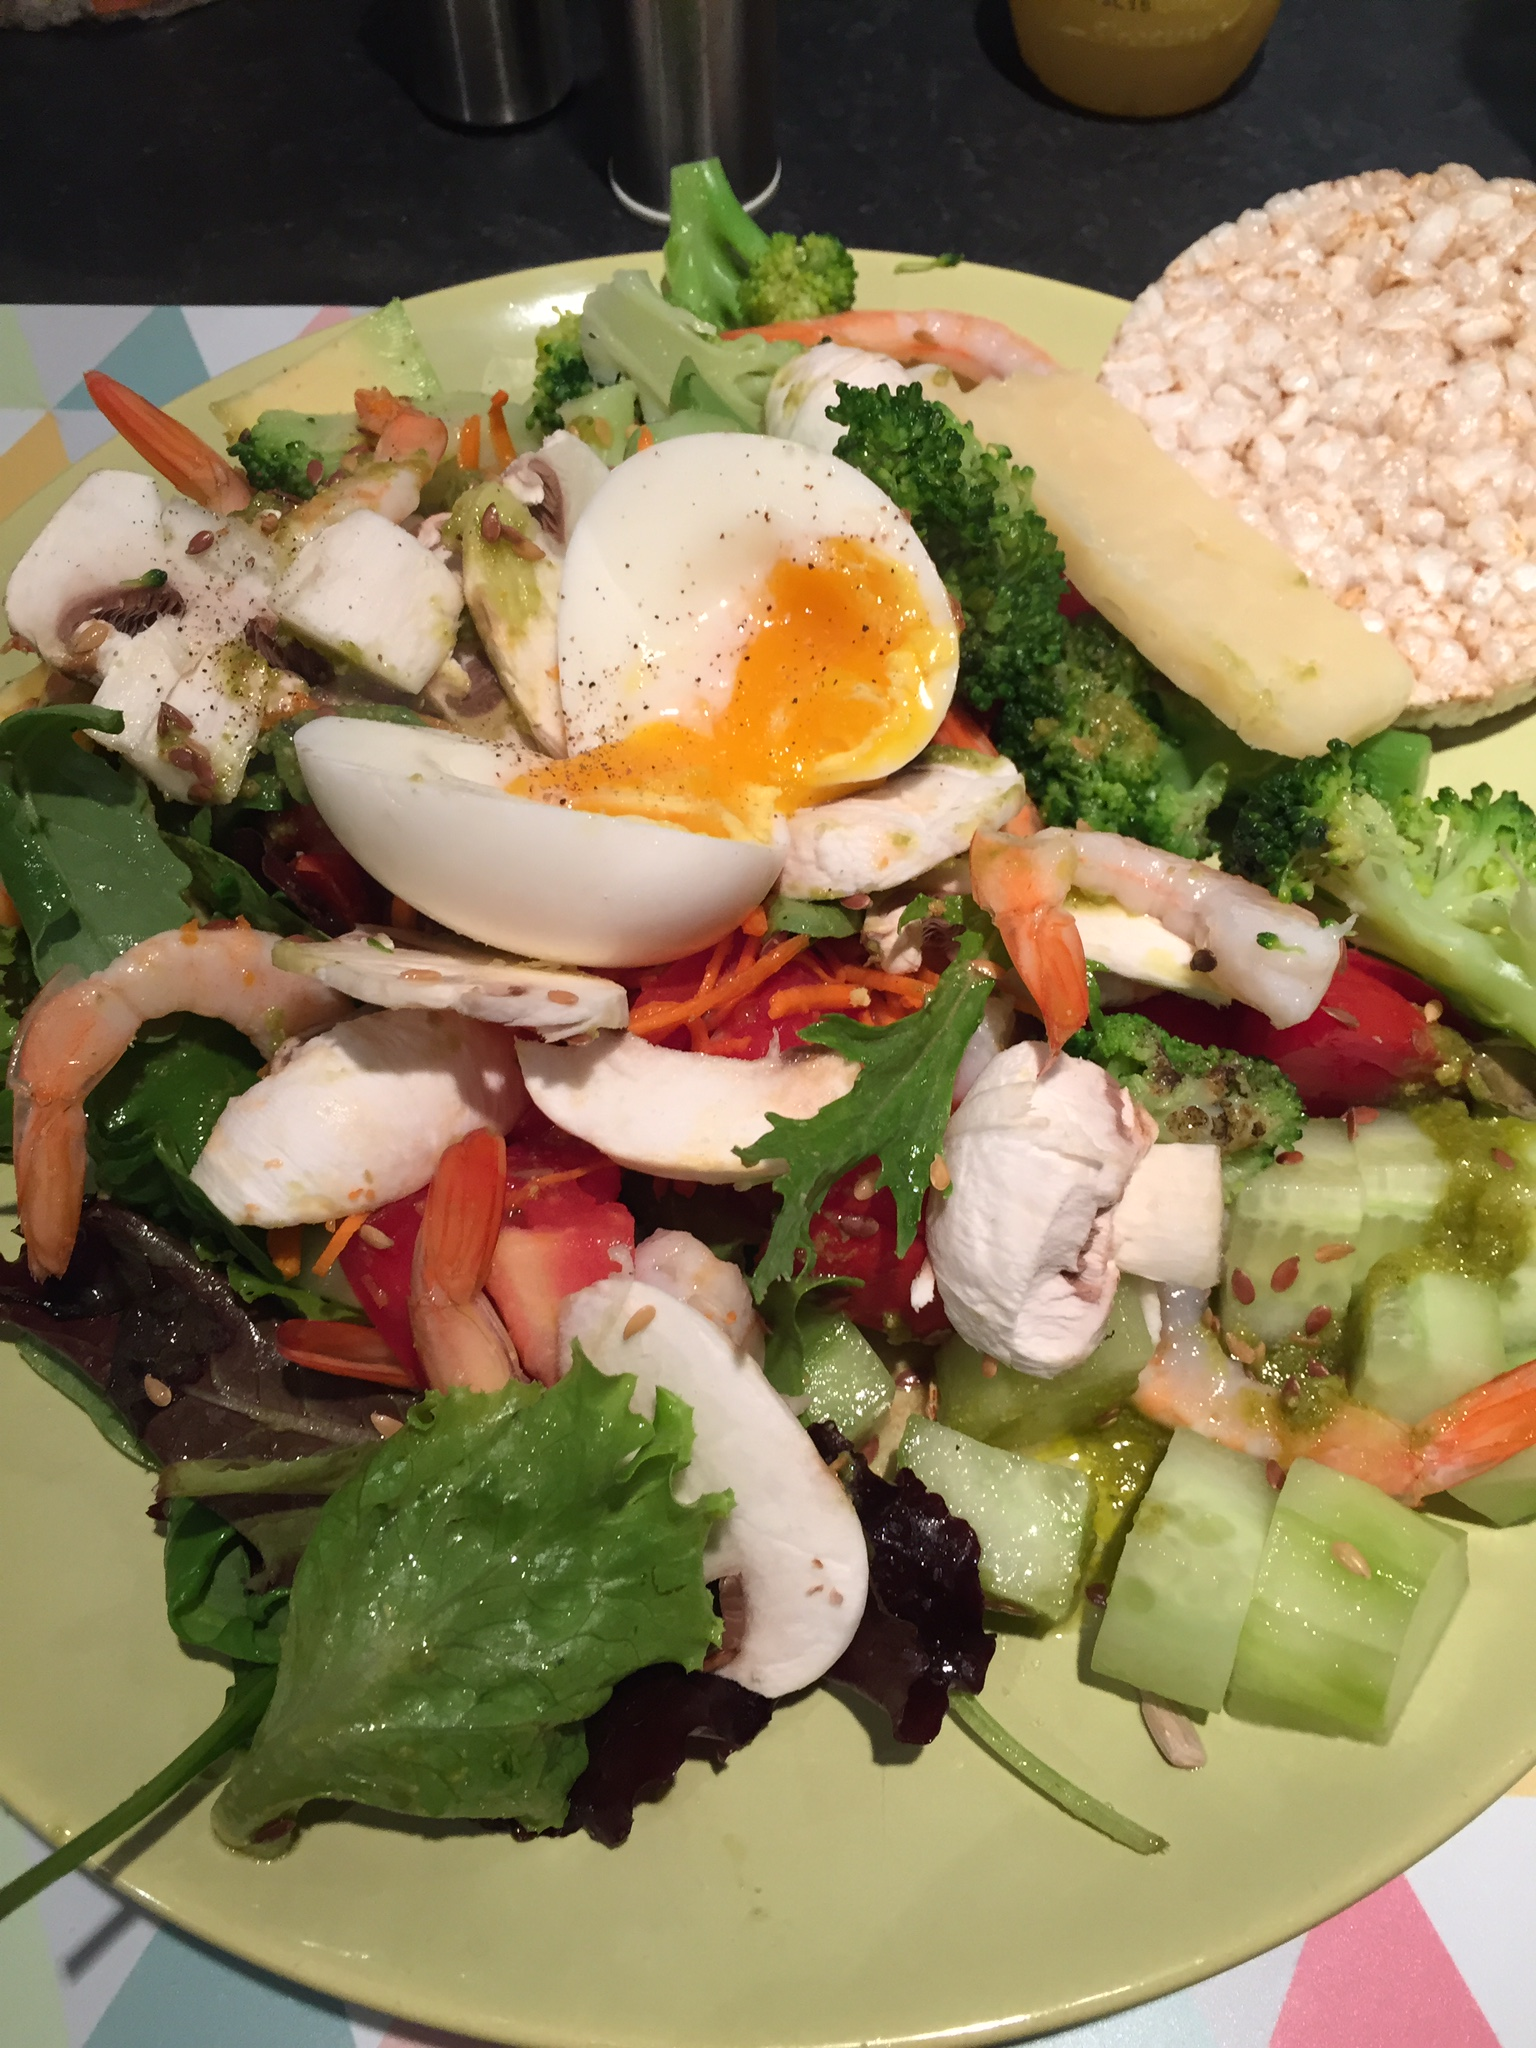 Id e repas quilibr recettes communaut espace for Idee repas a partager